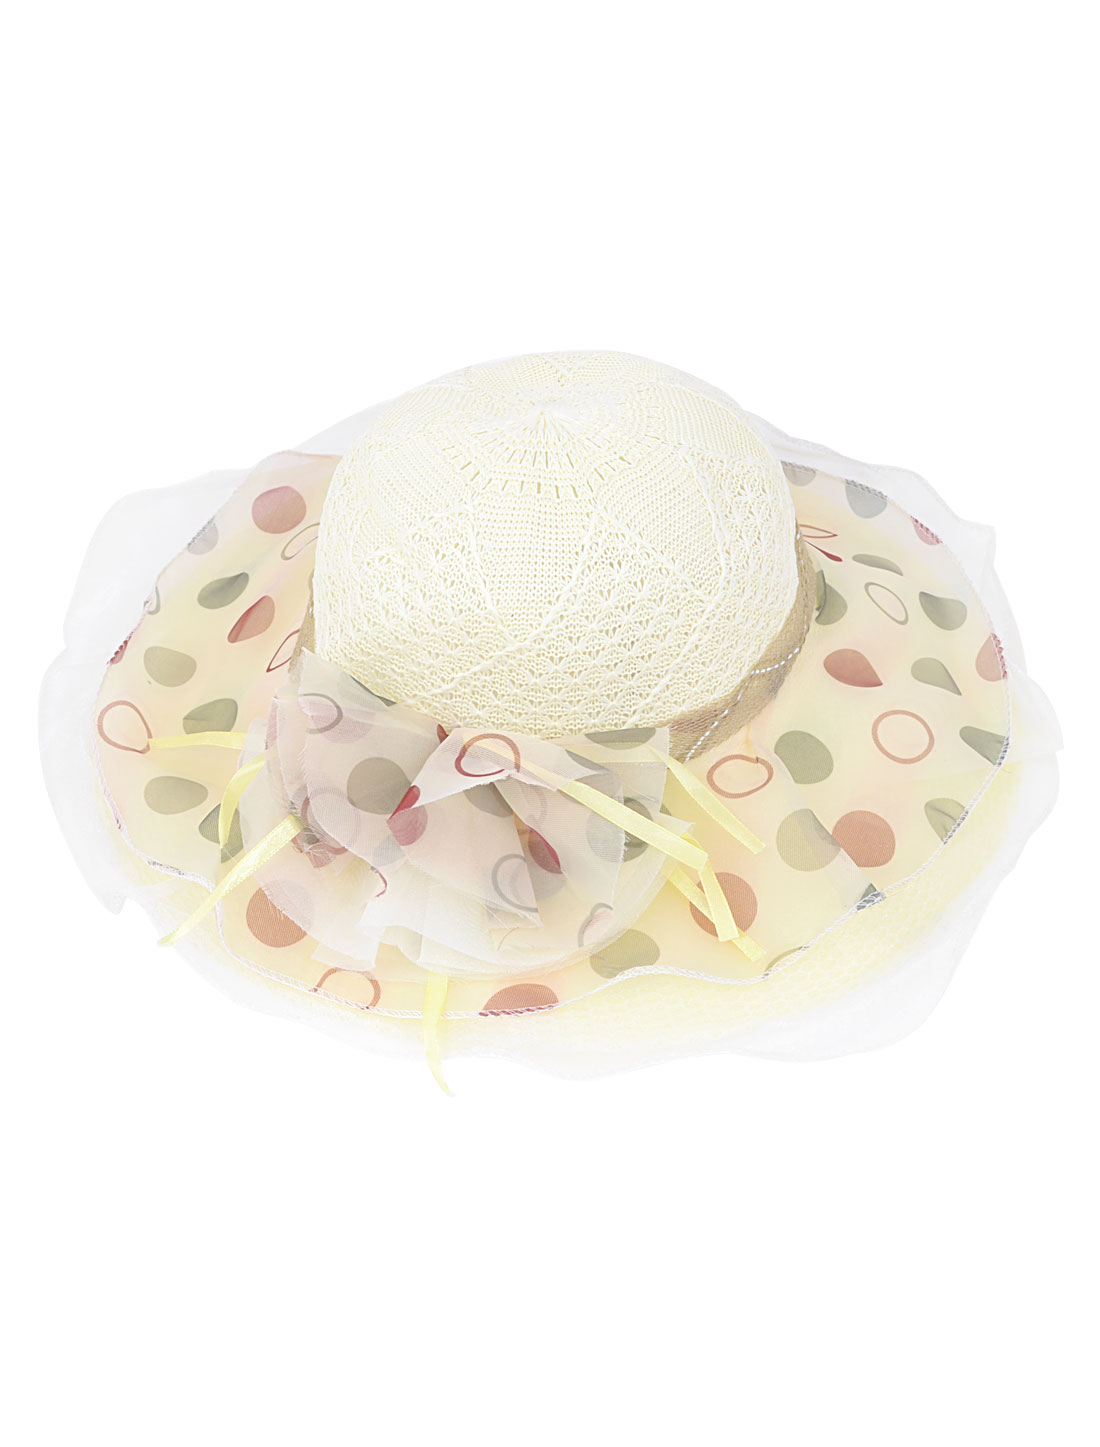 10cm Wide Brim Dots Pattern Chiffon Cover Summer Beach Hat Cap Ivory for Lady